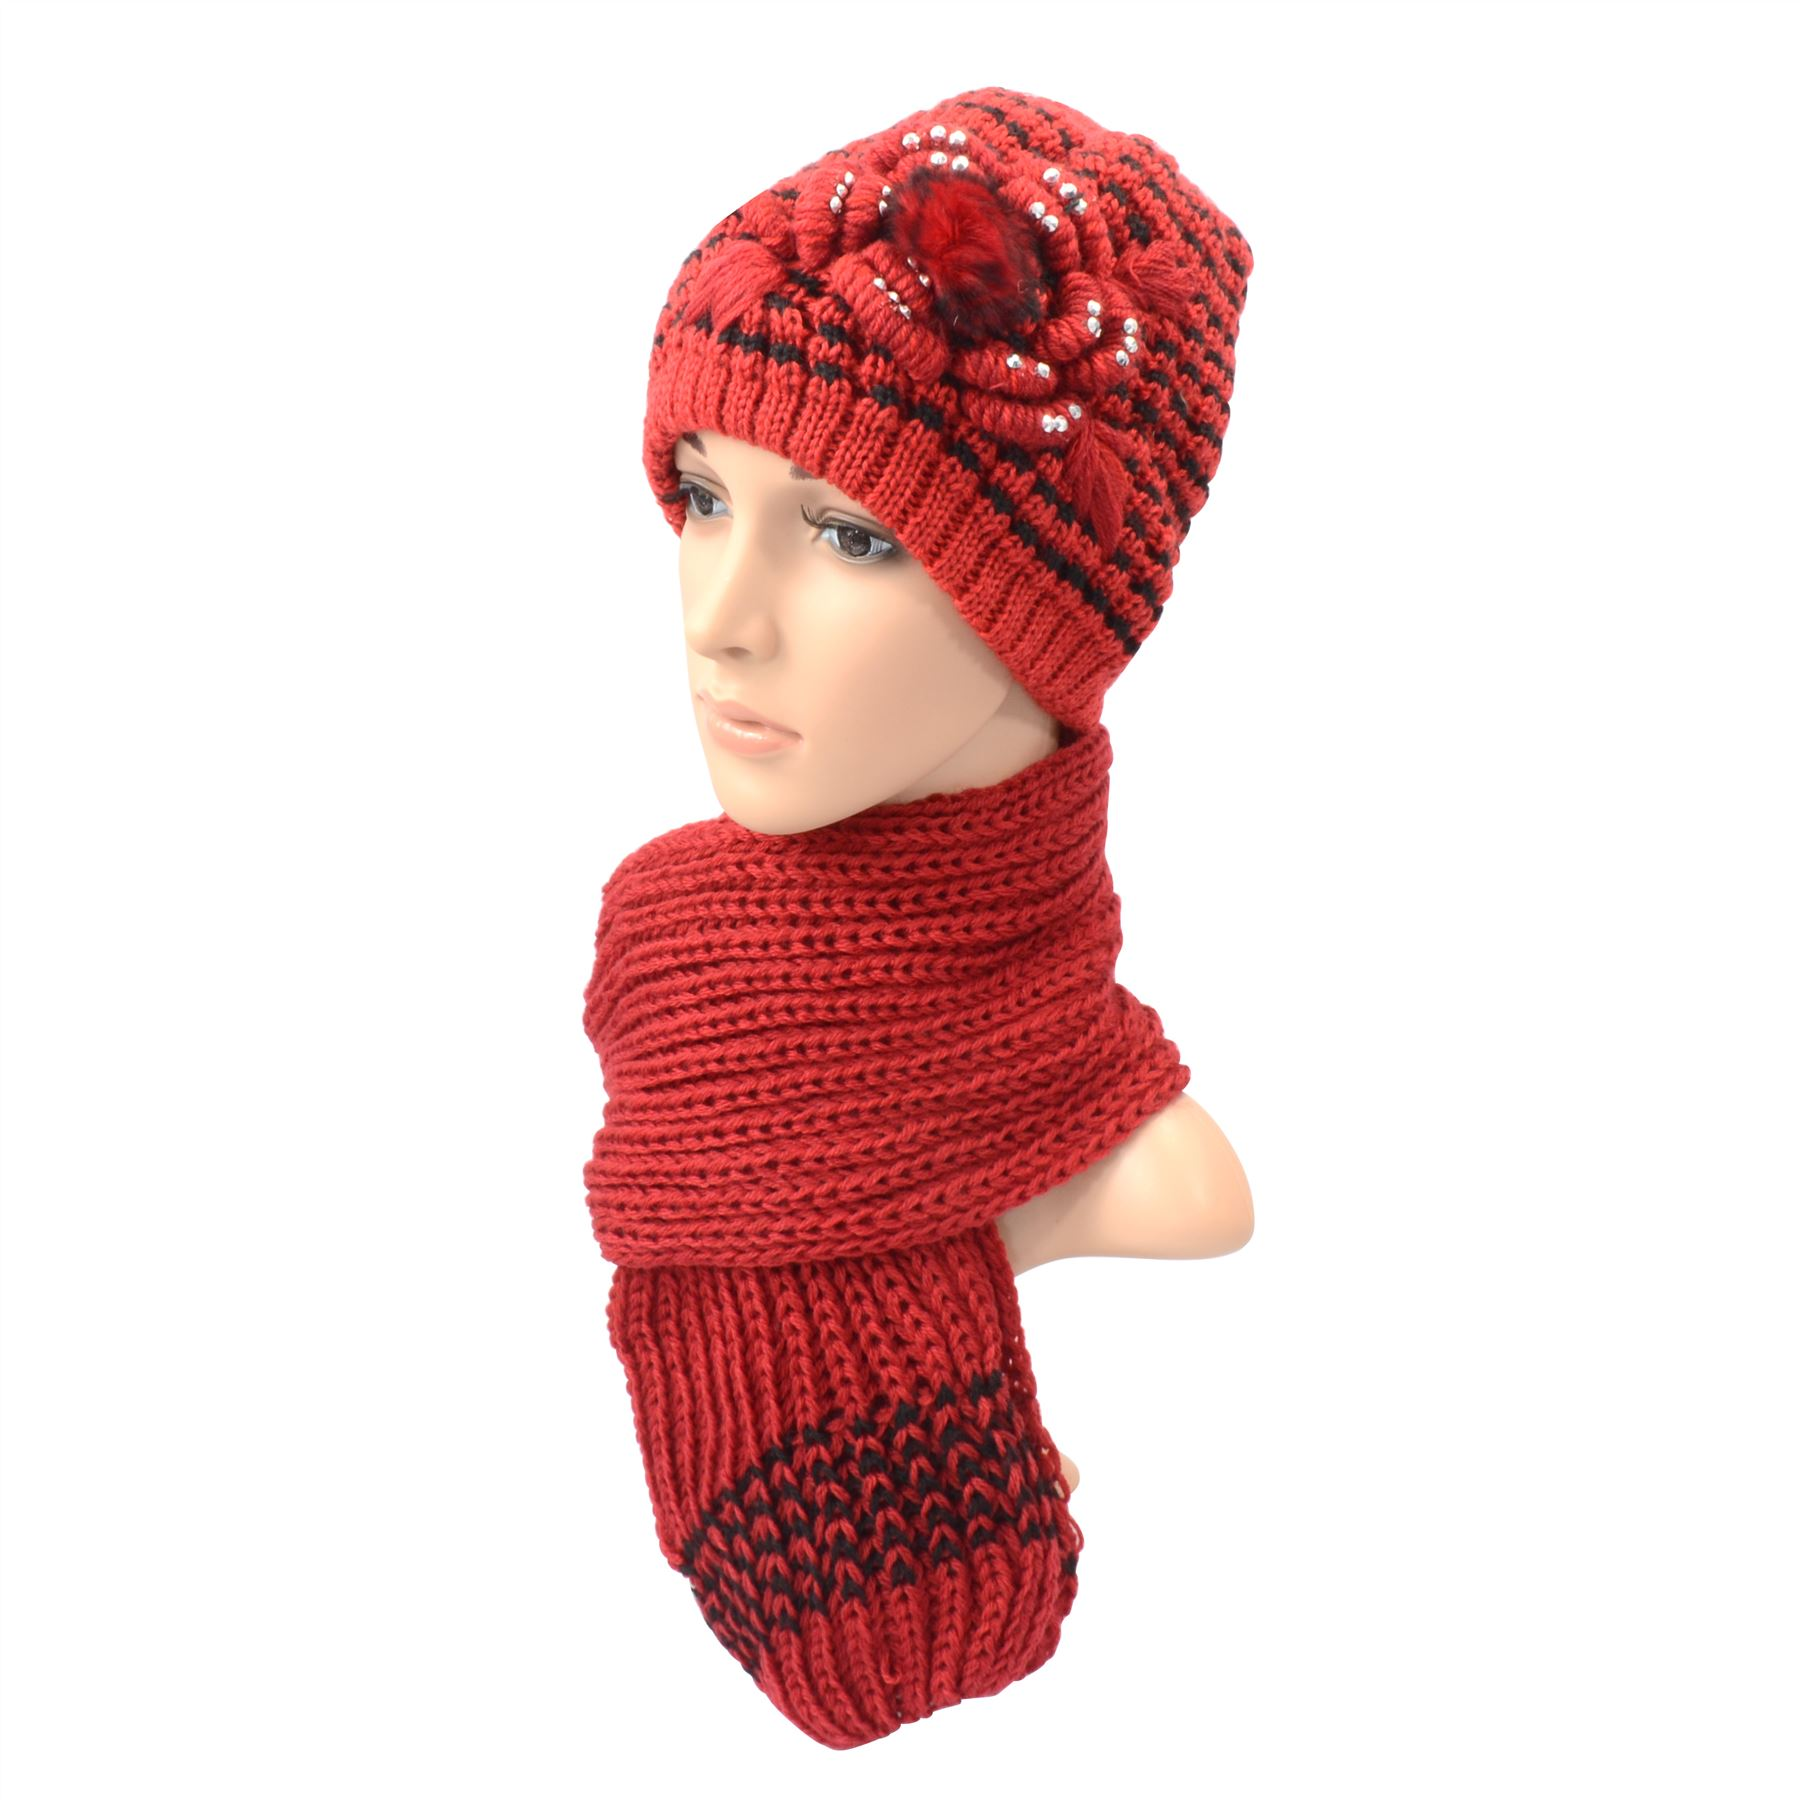 ★ Paul Smith College Lambswool Scarf @ Sale Price Mens Hats Gloves Amp Scarves, Shop to find the newest styles of Womens [PAUL SMITH COLLEGE LAMBSWOOL SCARF] Free shipping. Free returns. All the time.. Check Our Reviews Before You Buy!.